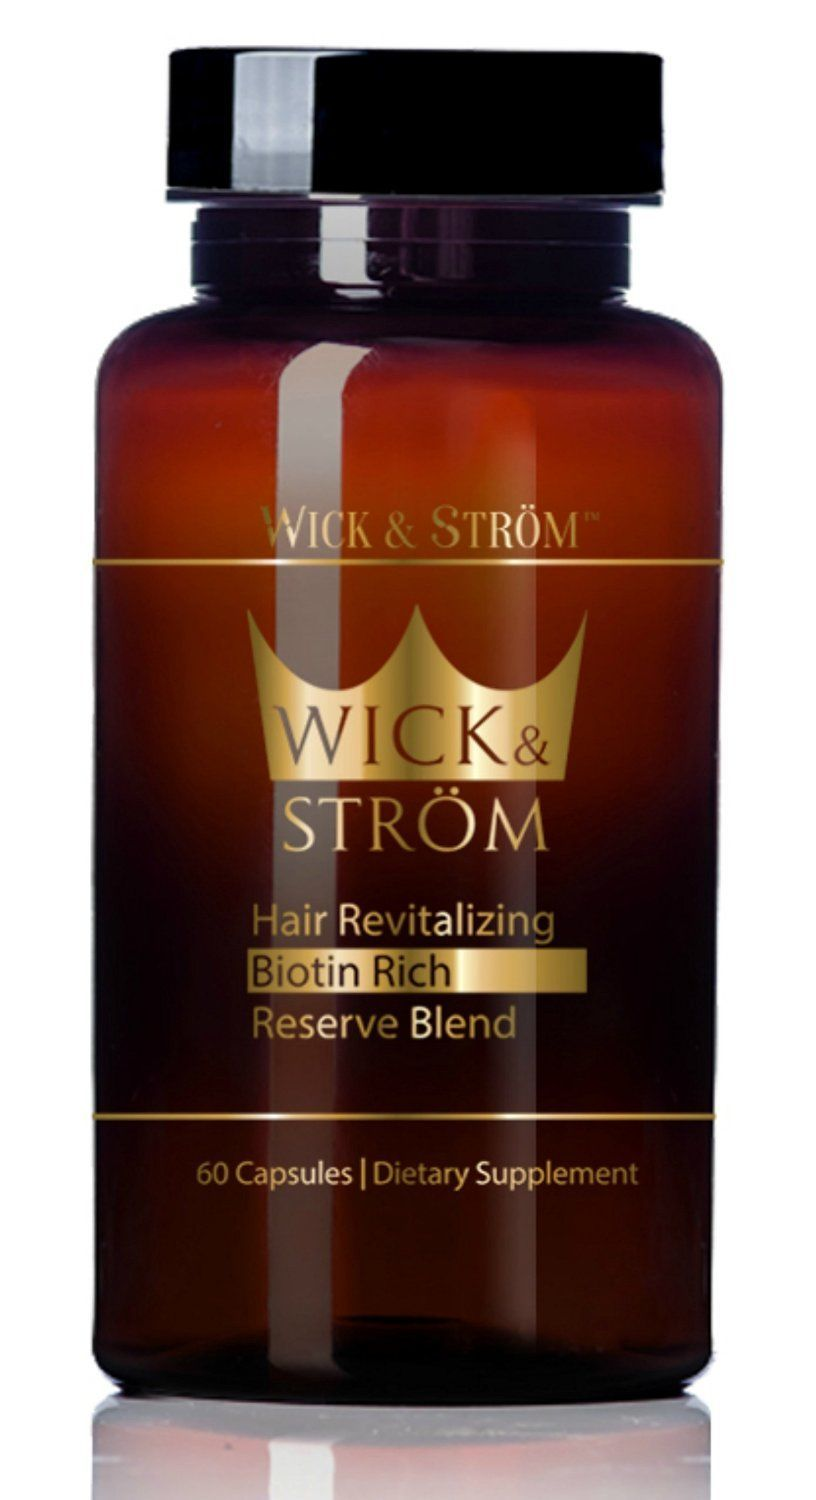 Wick and Strom Hair Loss Vitamins Reviews